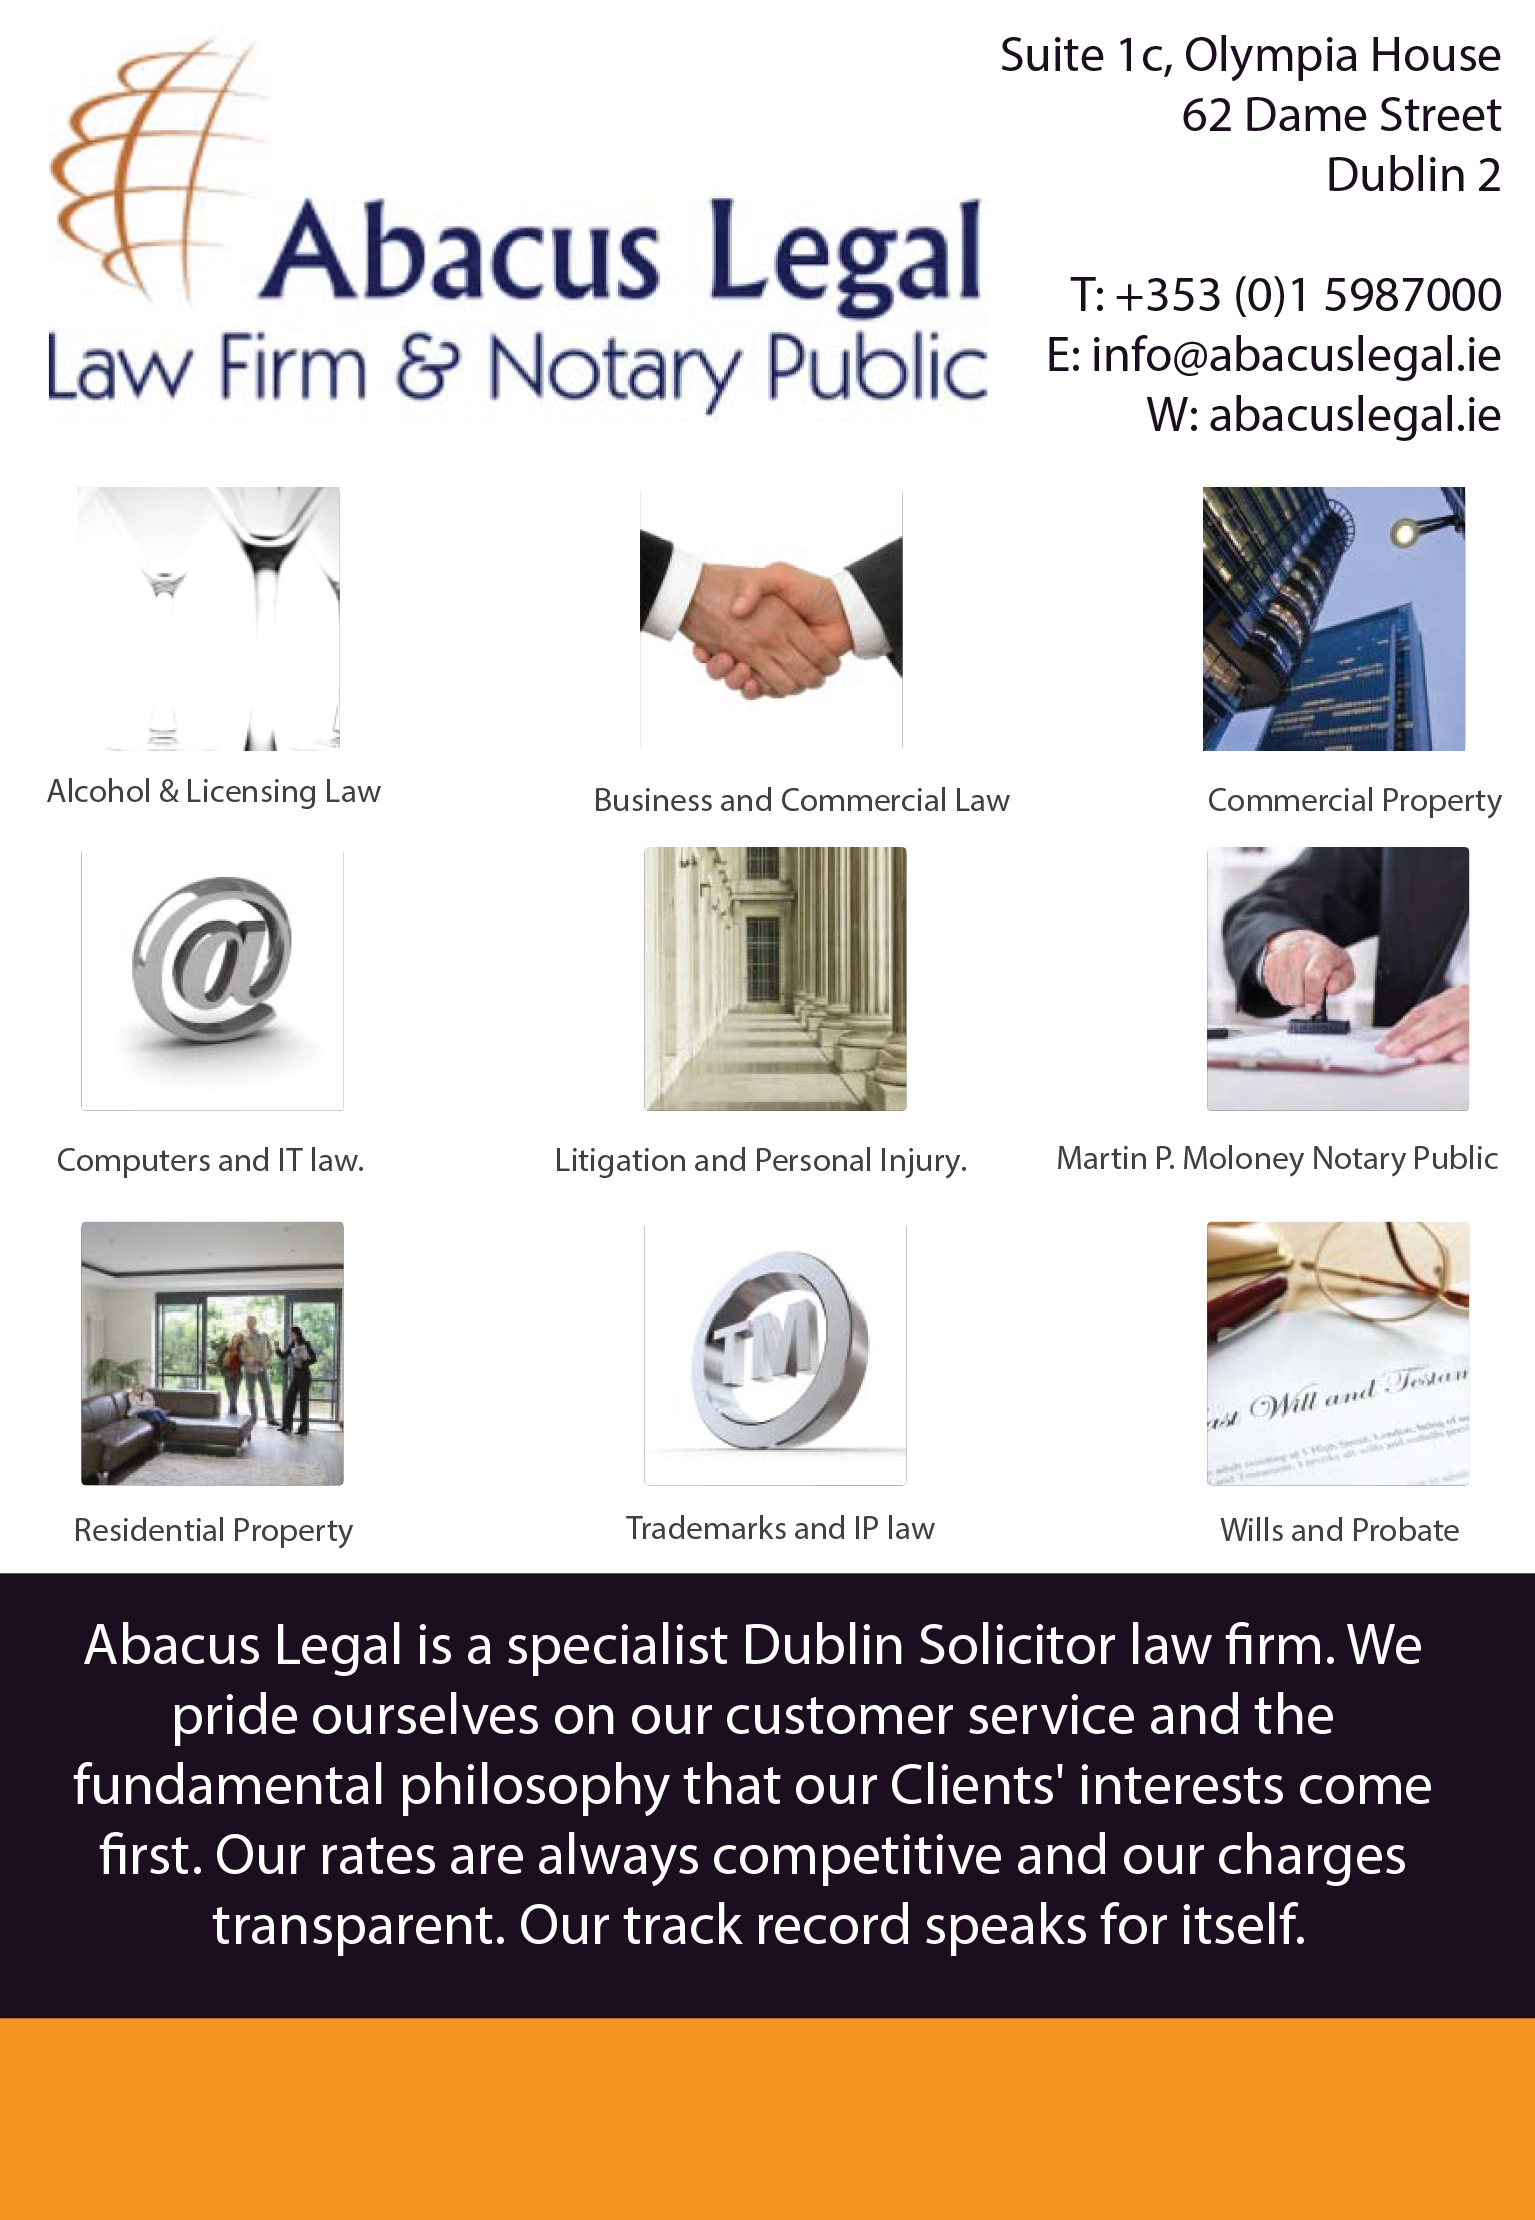 Abacus Legal Law Firm & Notary Public